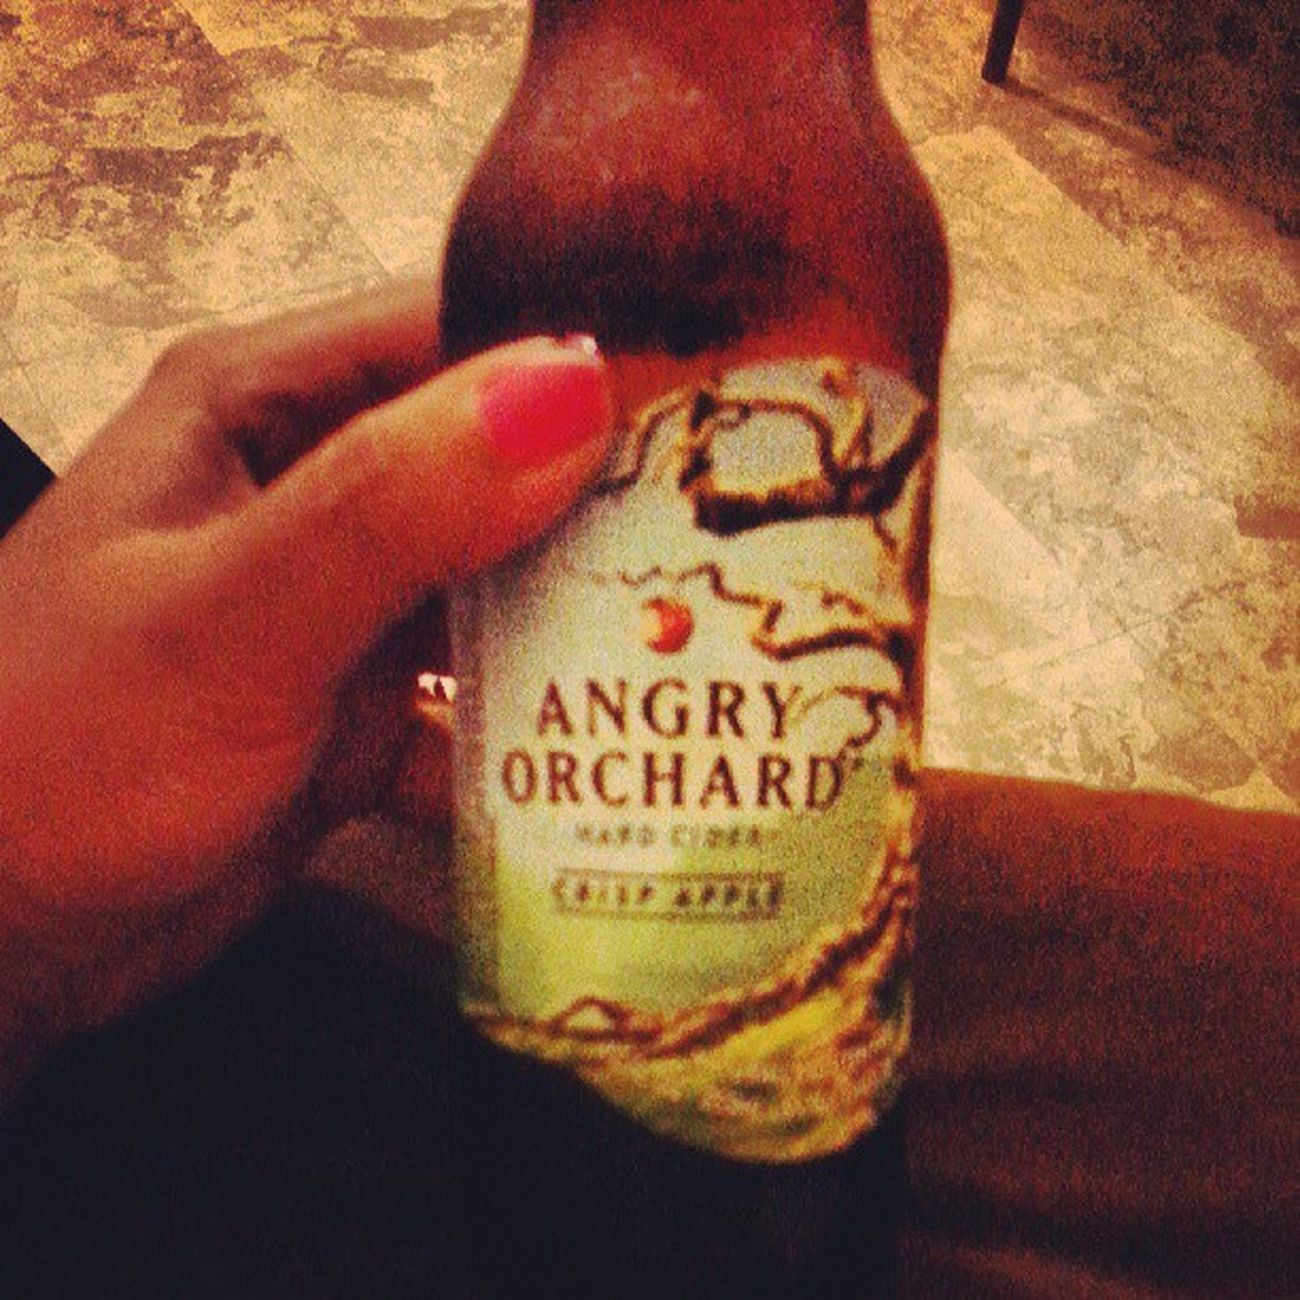 AngryOrchard Hardcider Crisp Apple naturally gluten free!